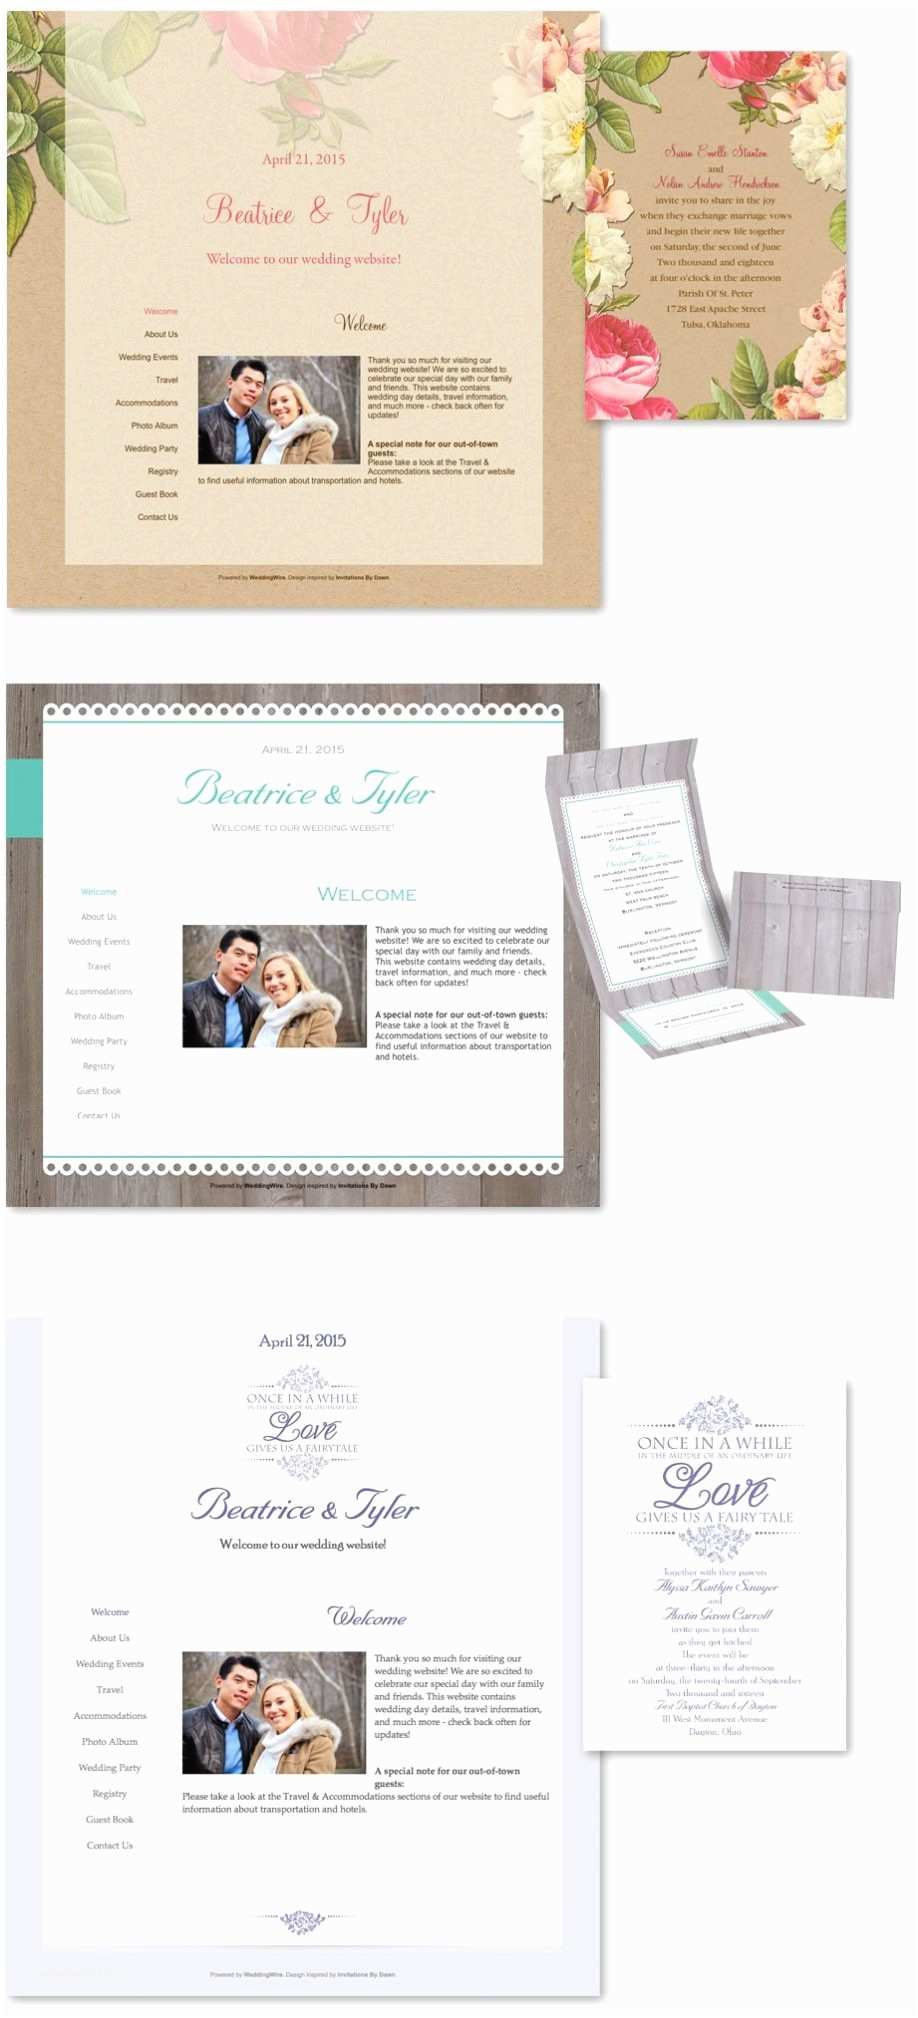 Wedding Invitation Website Create Line Wedding Invitation Website Free Wedding